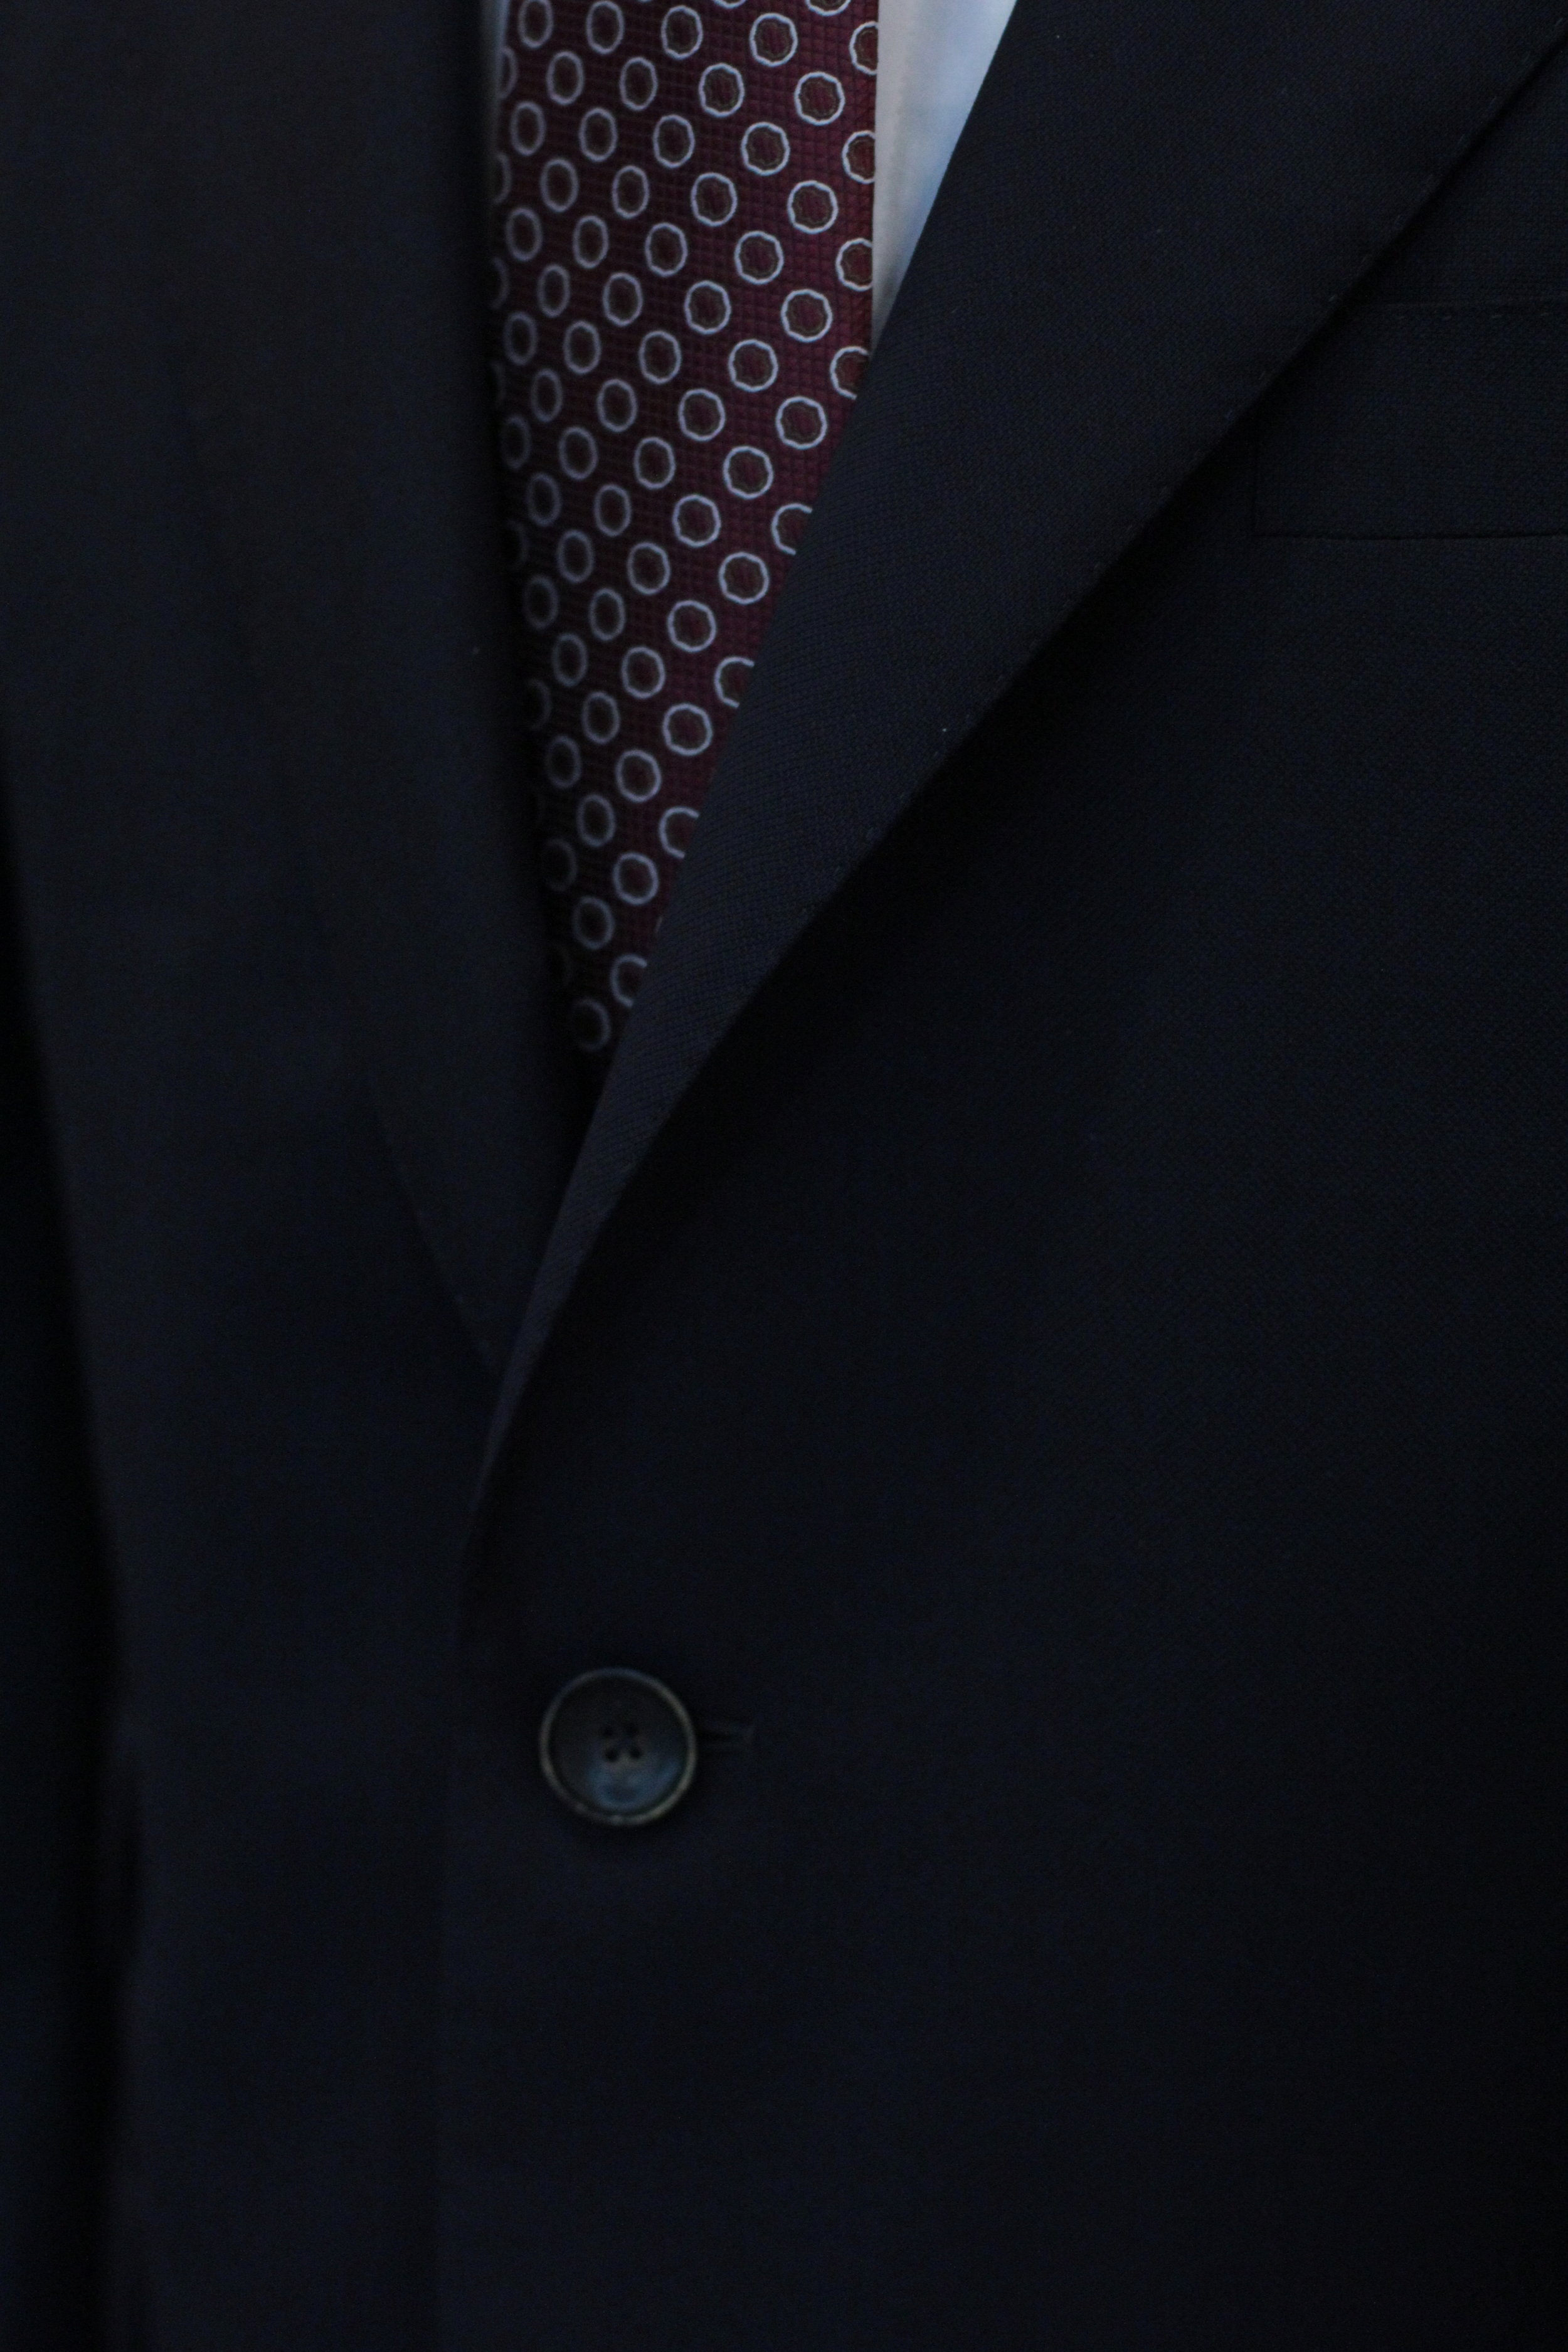 Made Suits Mr Tey | STYLBIELLA | Suit | Made to Measure Suits lapel roll.JPG